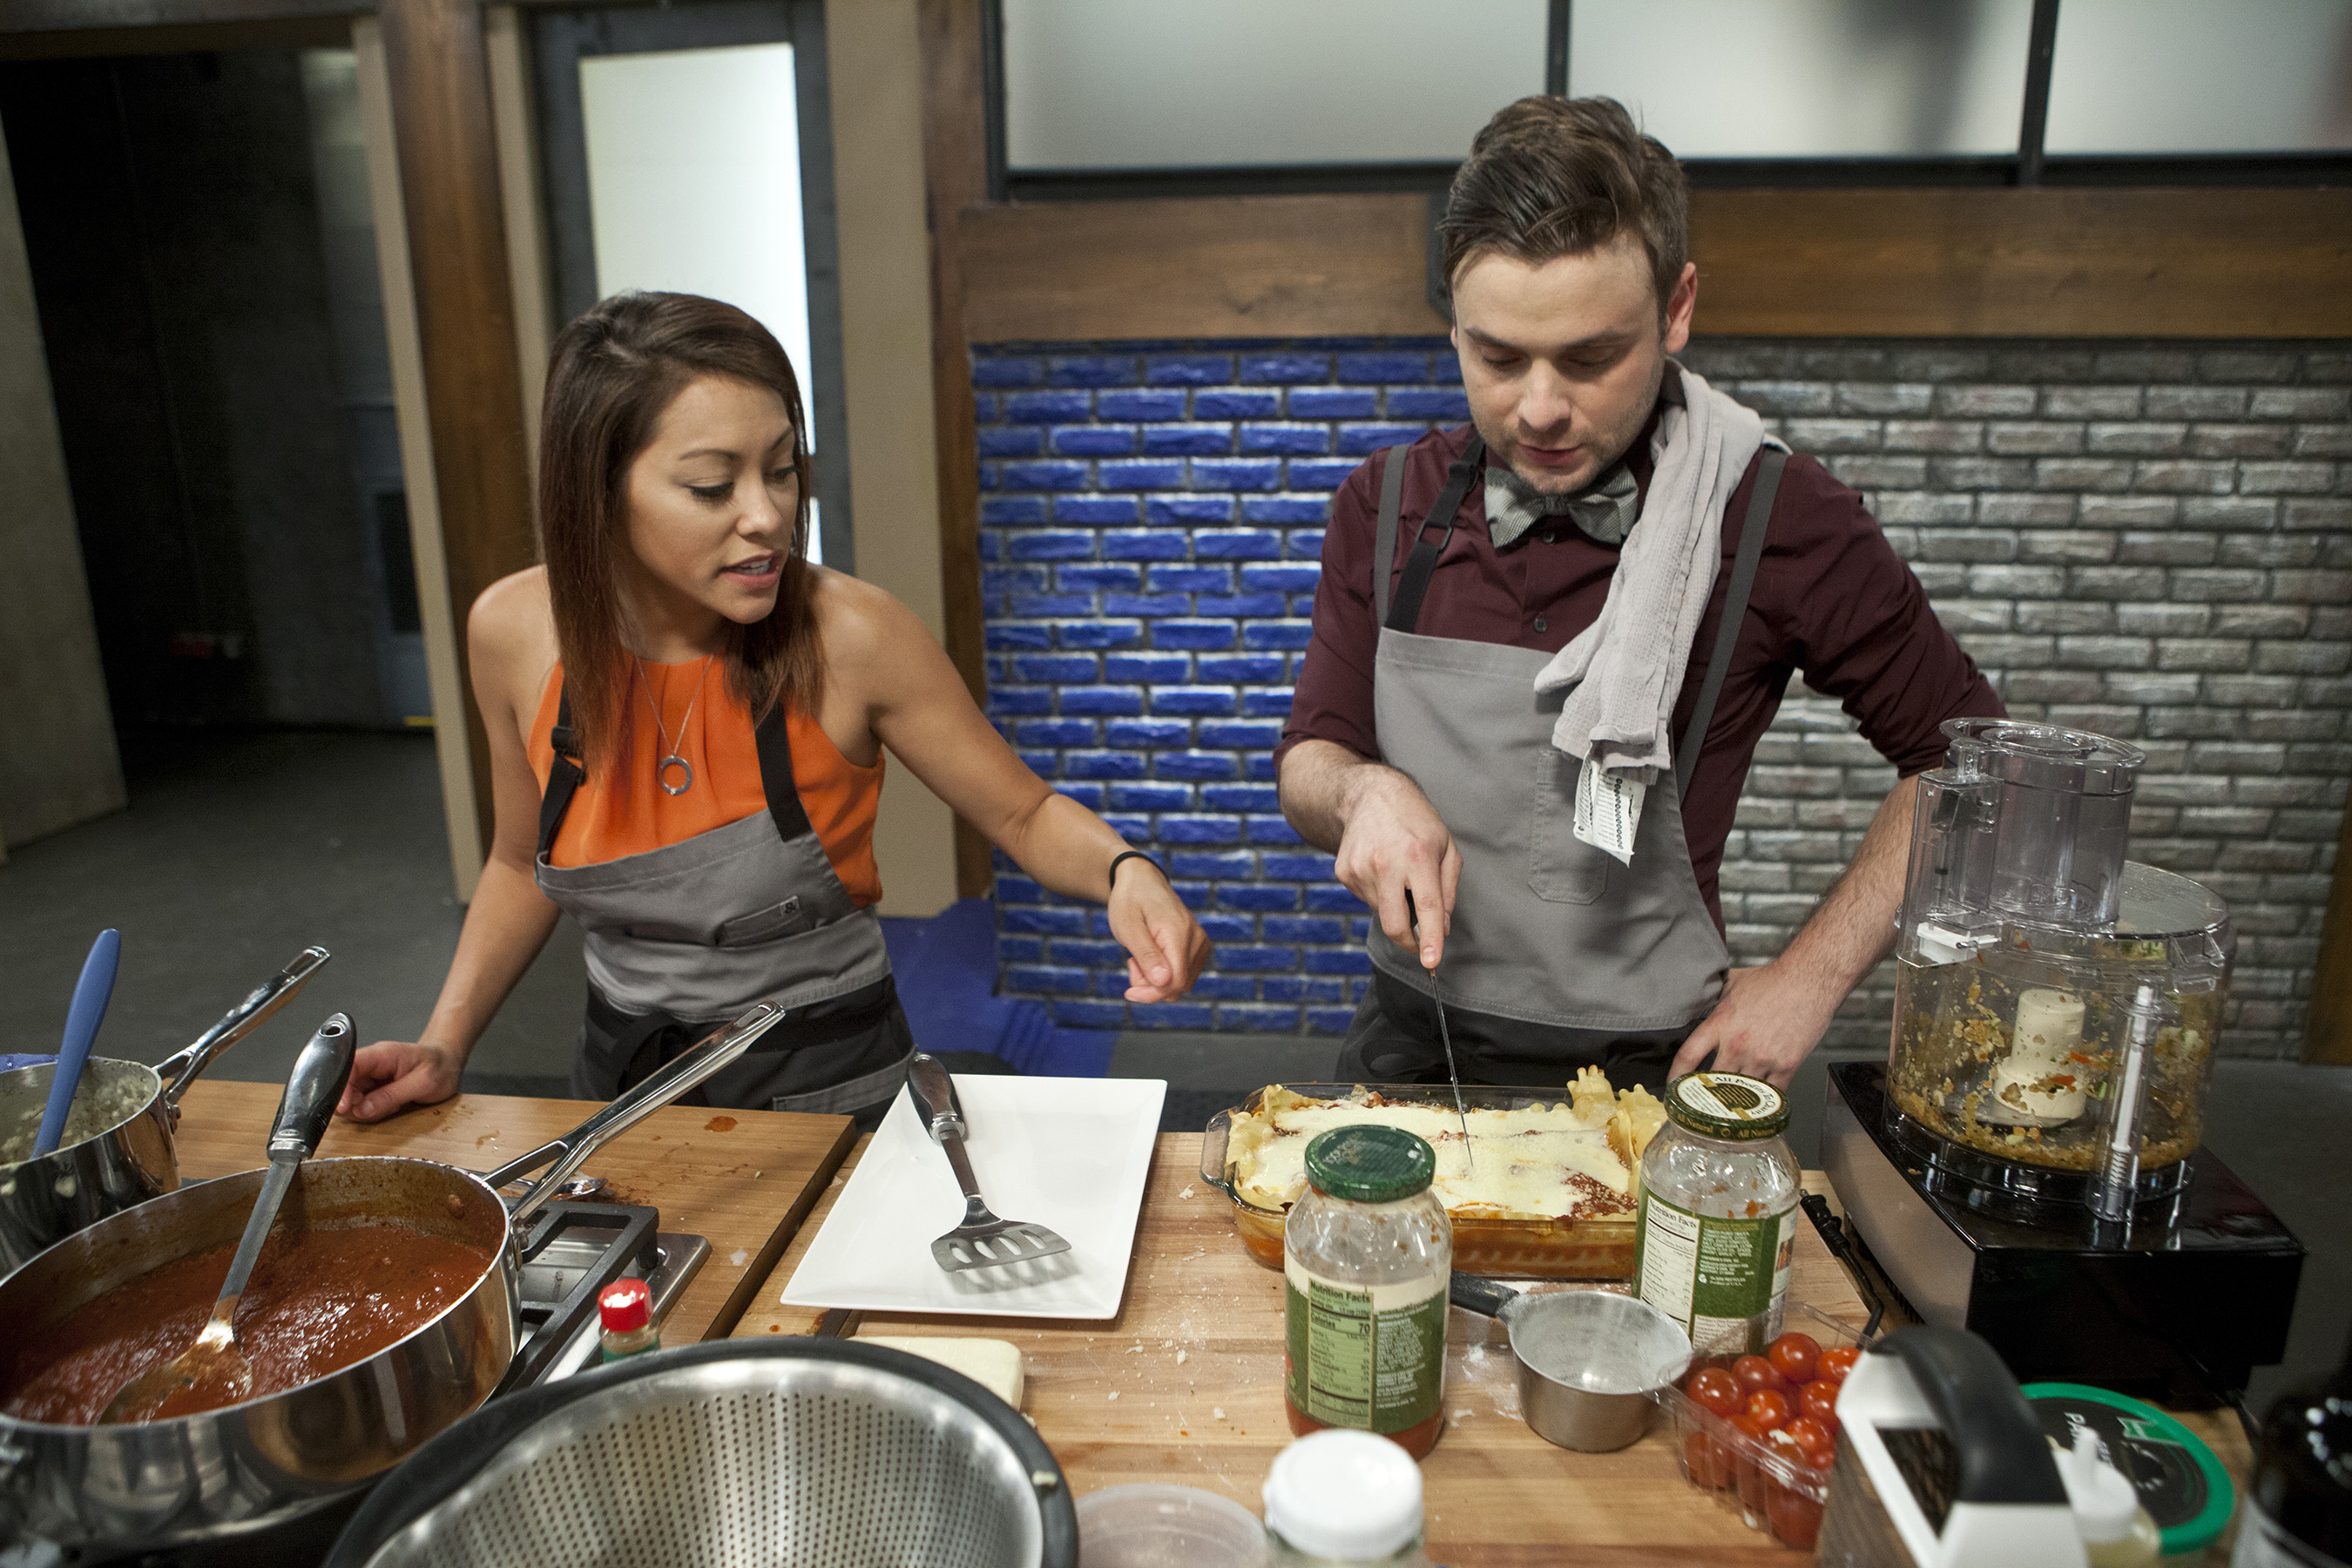 Recruits Priscilla Nguyen and Steven Crowley on Food Network's Worst Cooks In America